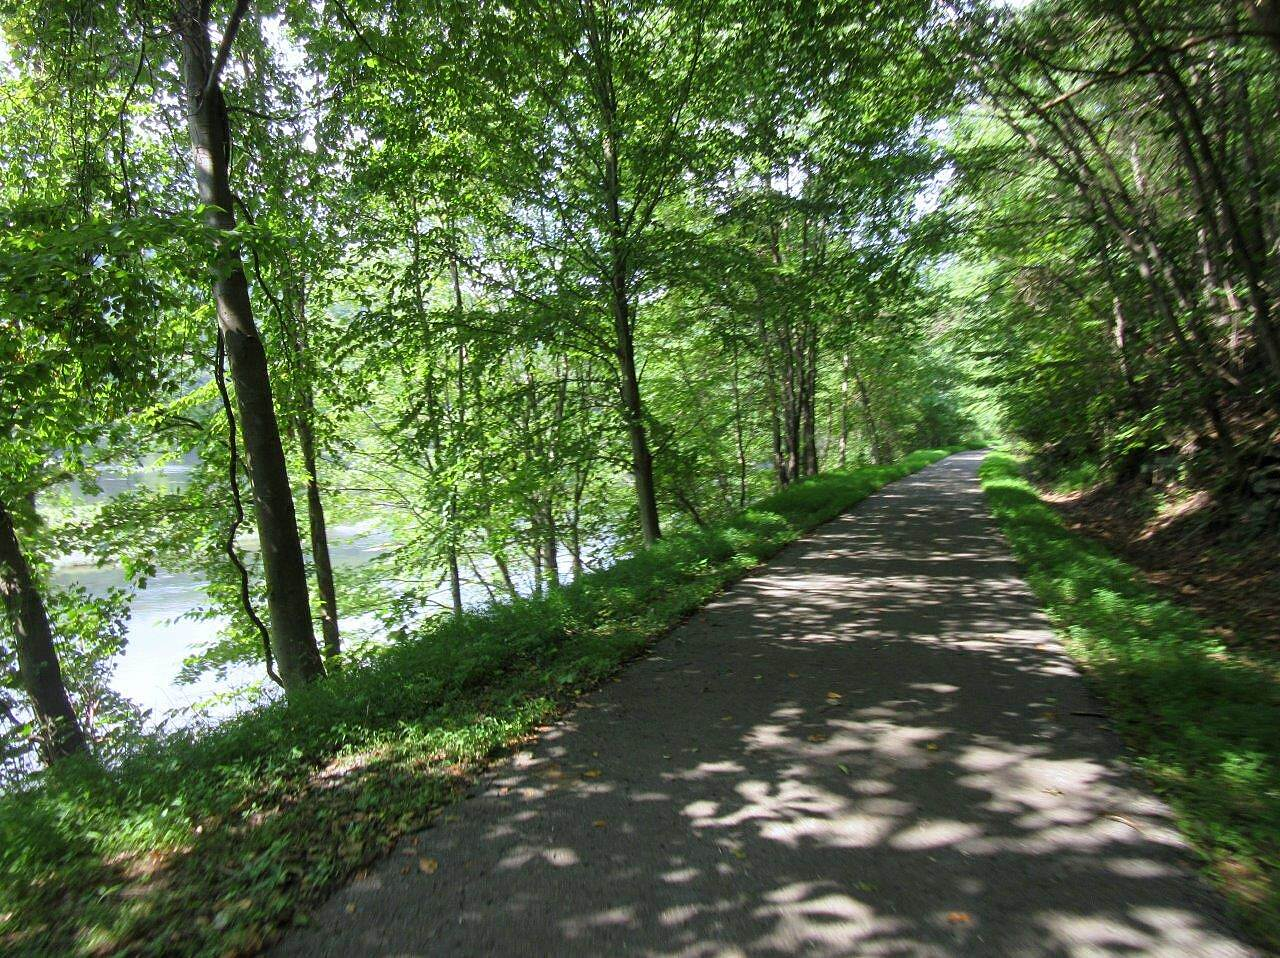 Allegheny River Trail Nice and shady a lot of the trail is shaded for those hot summer days